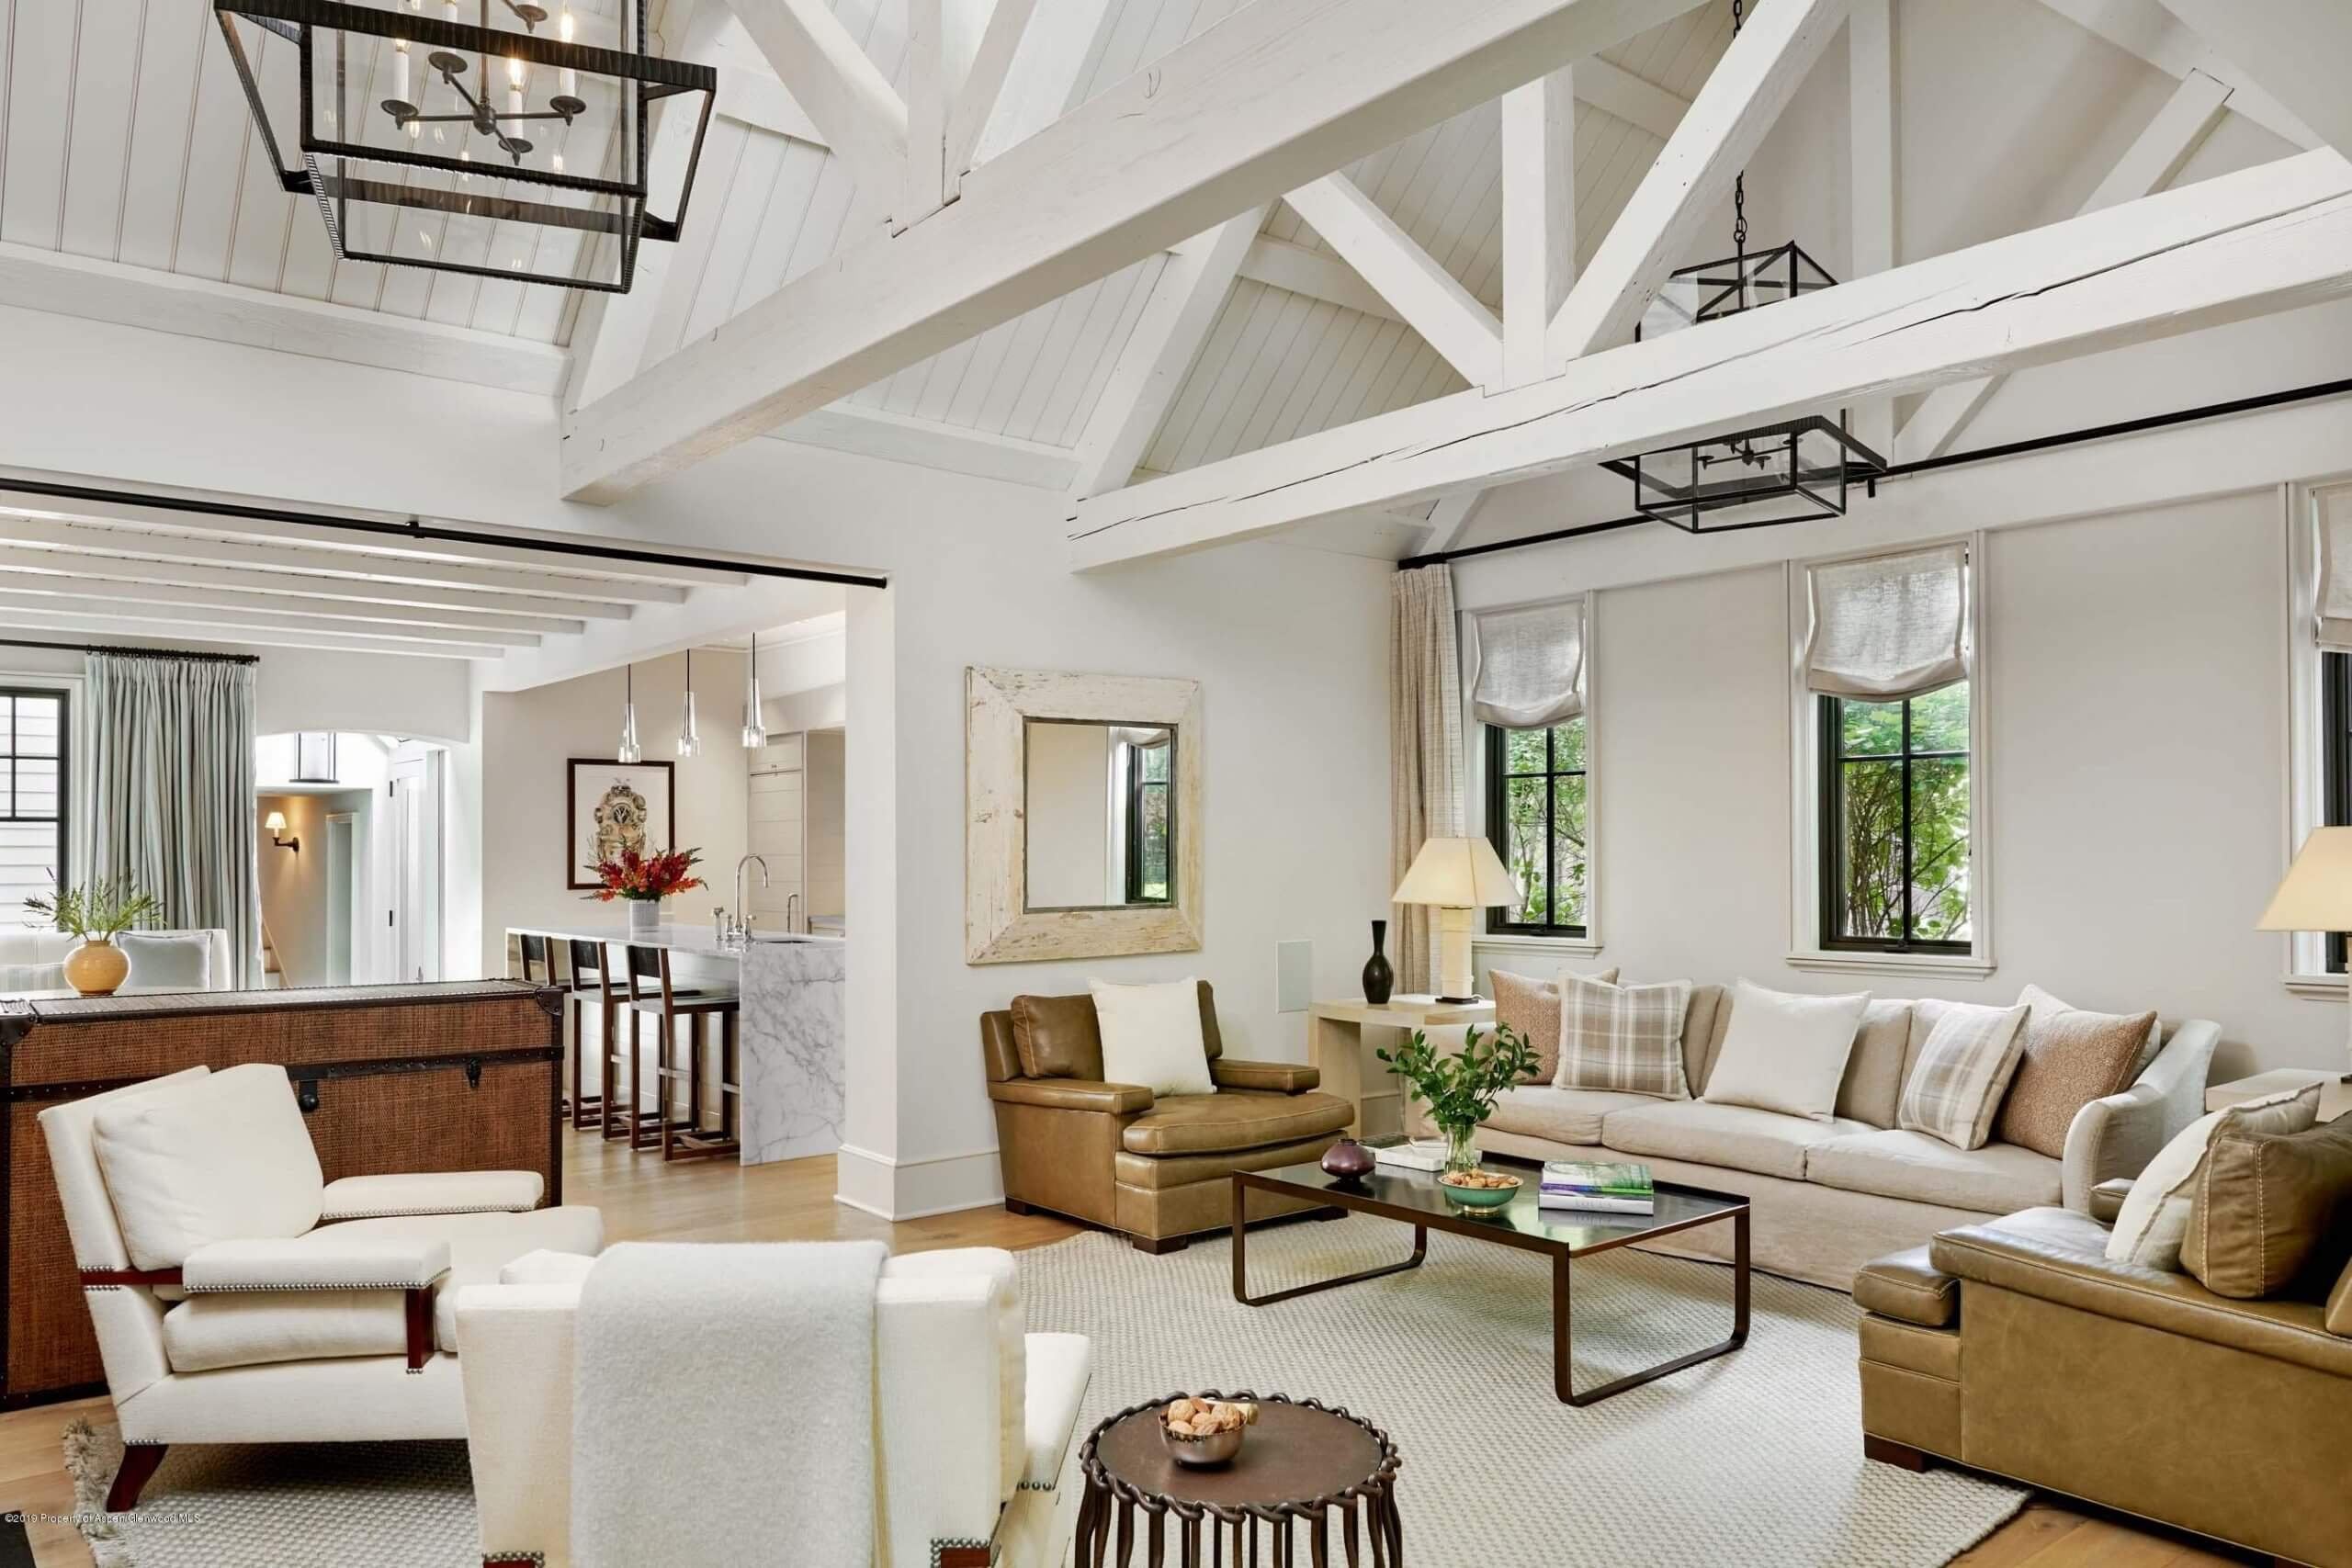 2012 Remodeled W. End Home at 610 W Hallam St Closes at $12.54M/$2,626 SF Furn Image